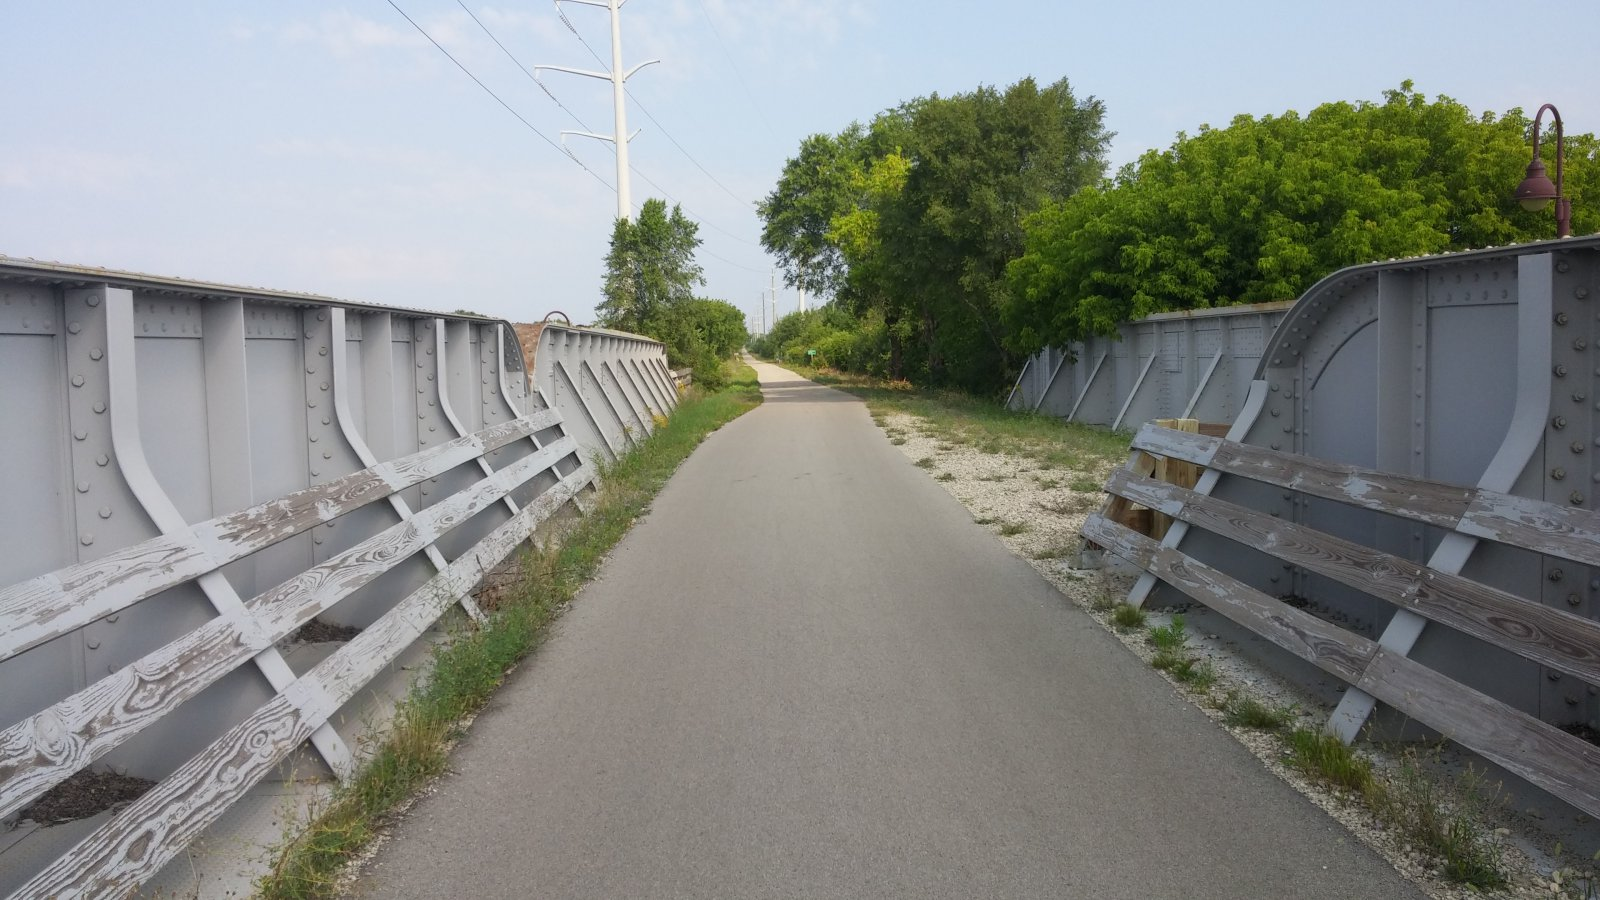 The Chicago and North Western Railway route is part of the Oak Leaf Trail. Photo by Carl Baehr.